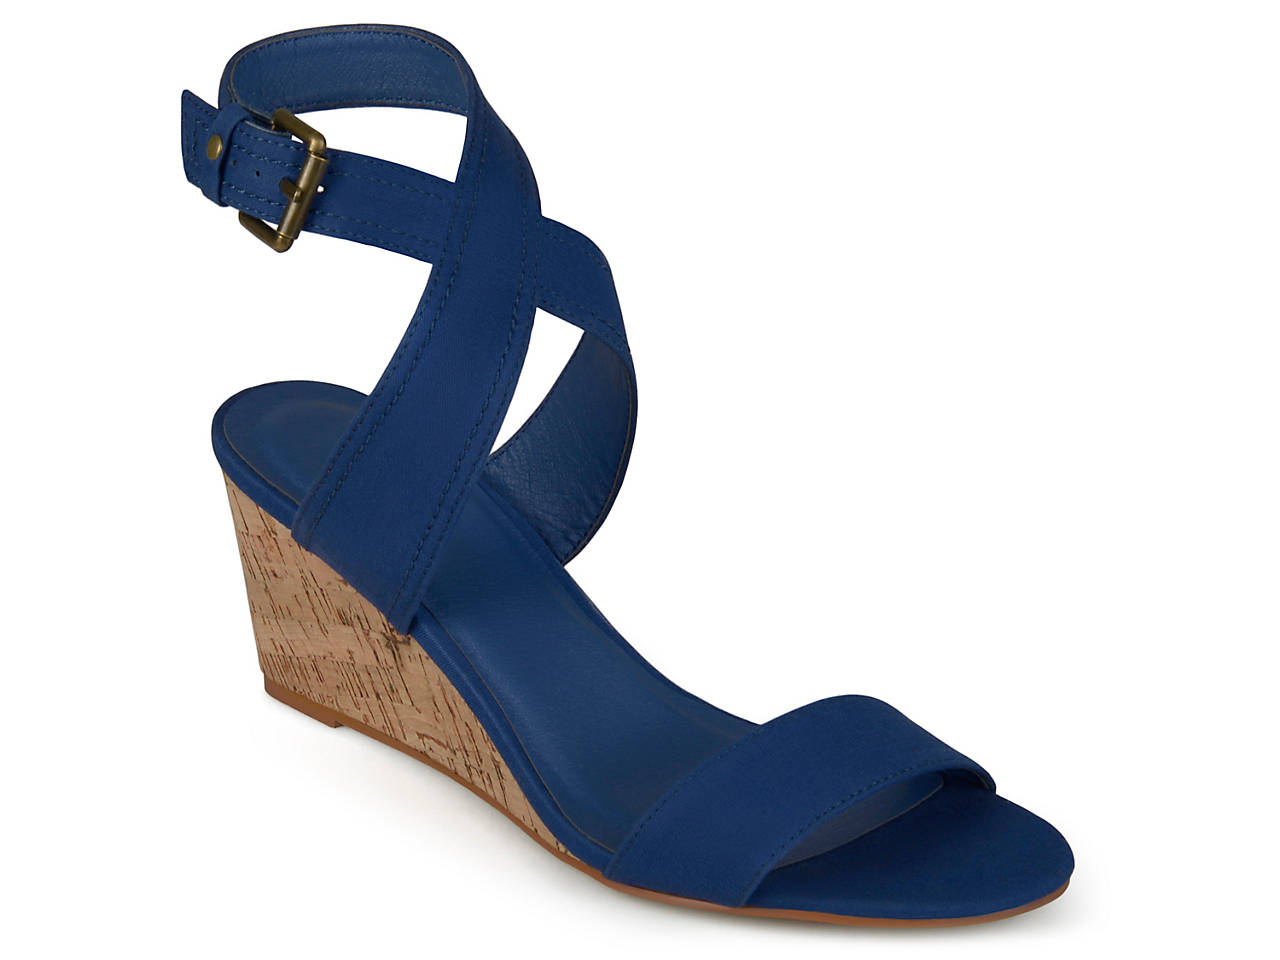 8904cb985e31 Journee Collection Kaylee Wedge Sandal Women s Shoes